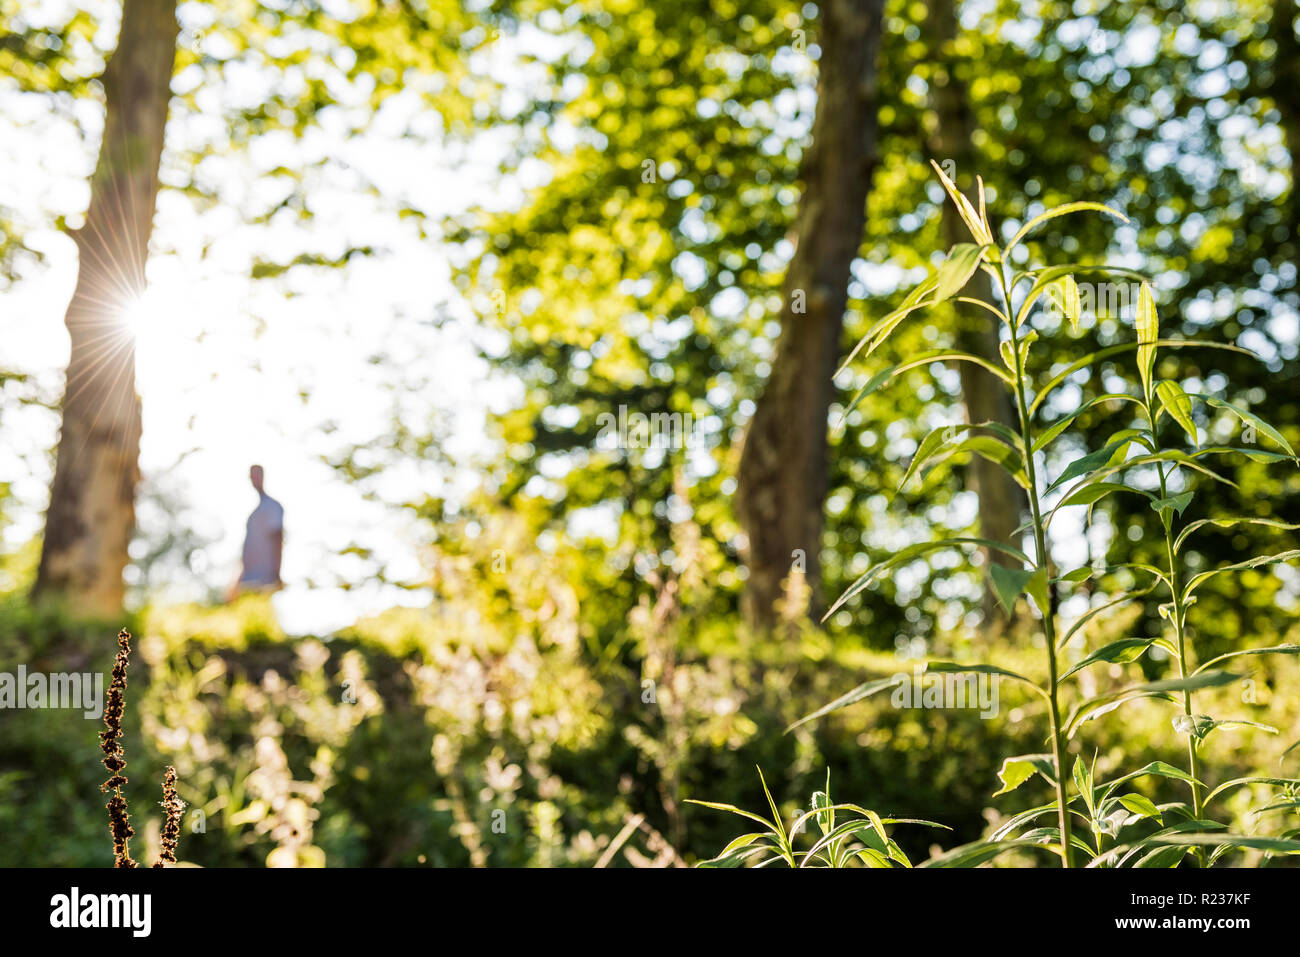 Man walking in the Park - Stock Image